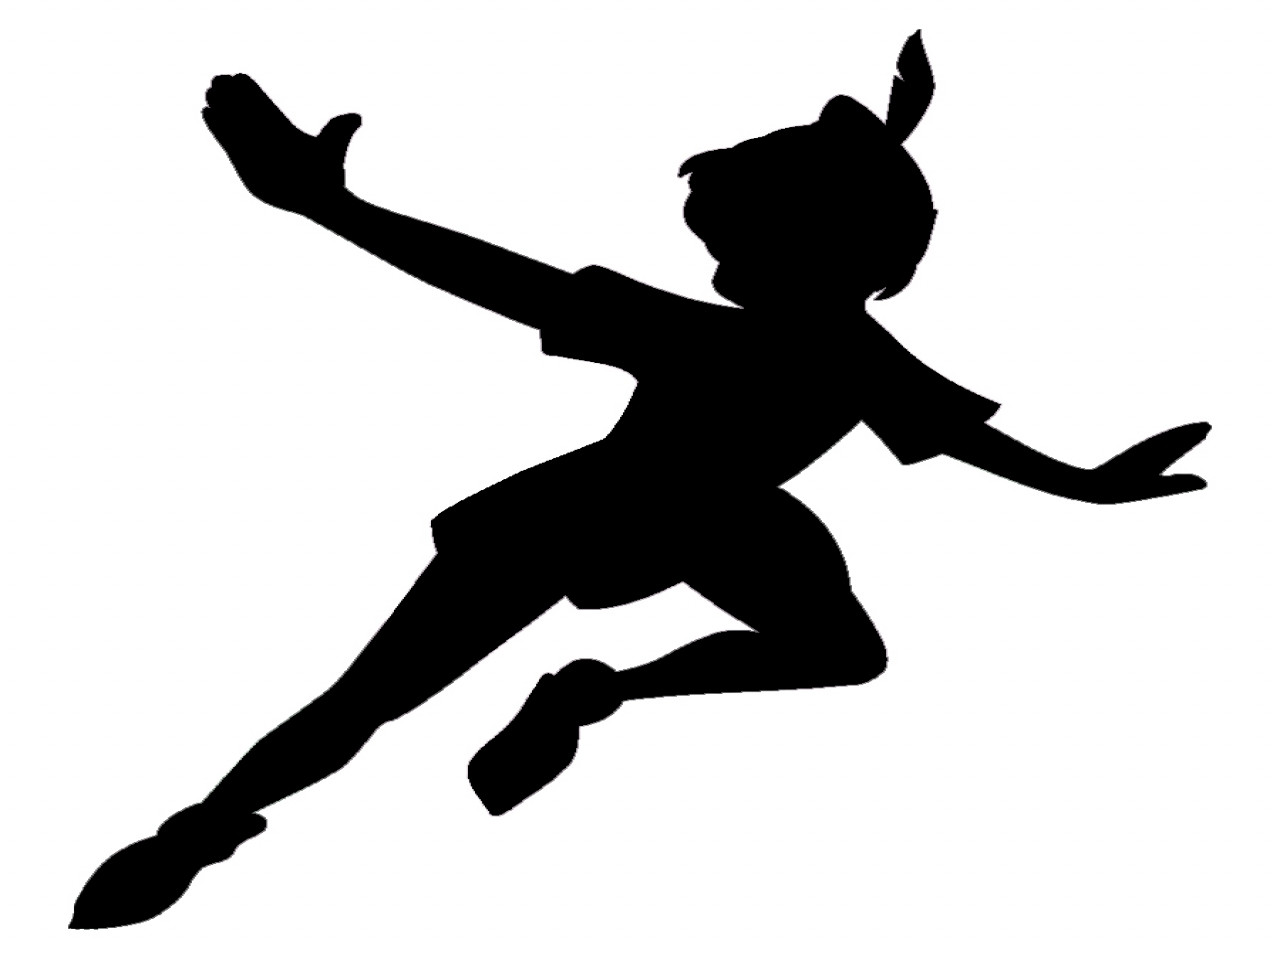 1280x960 Peter Pan Silhouette Fiscalreform